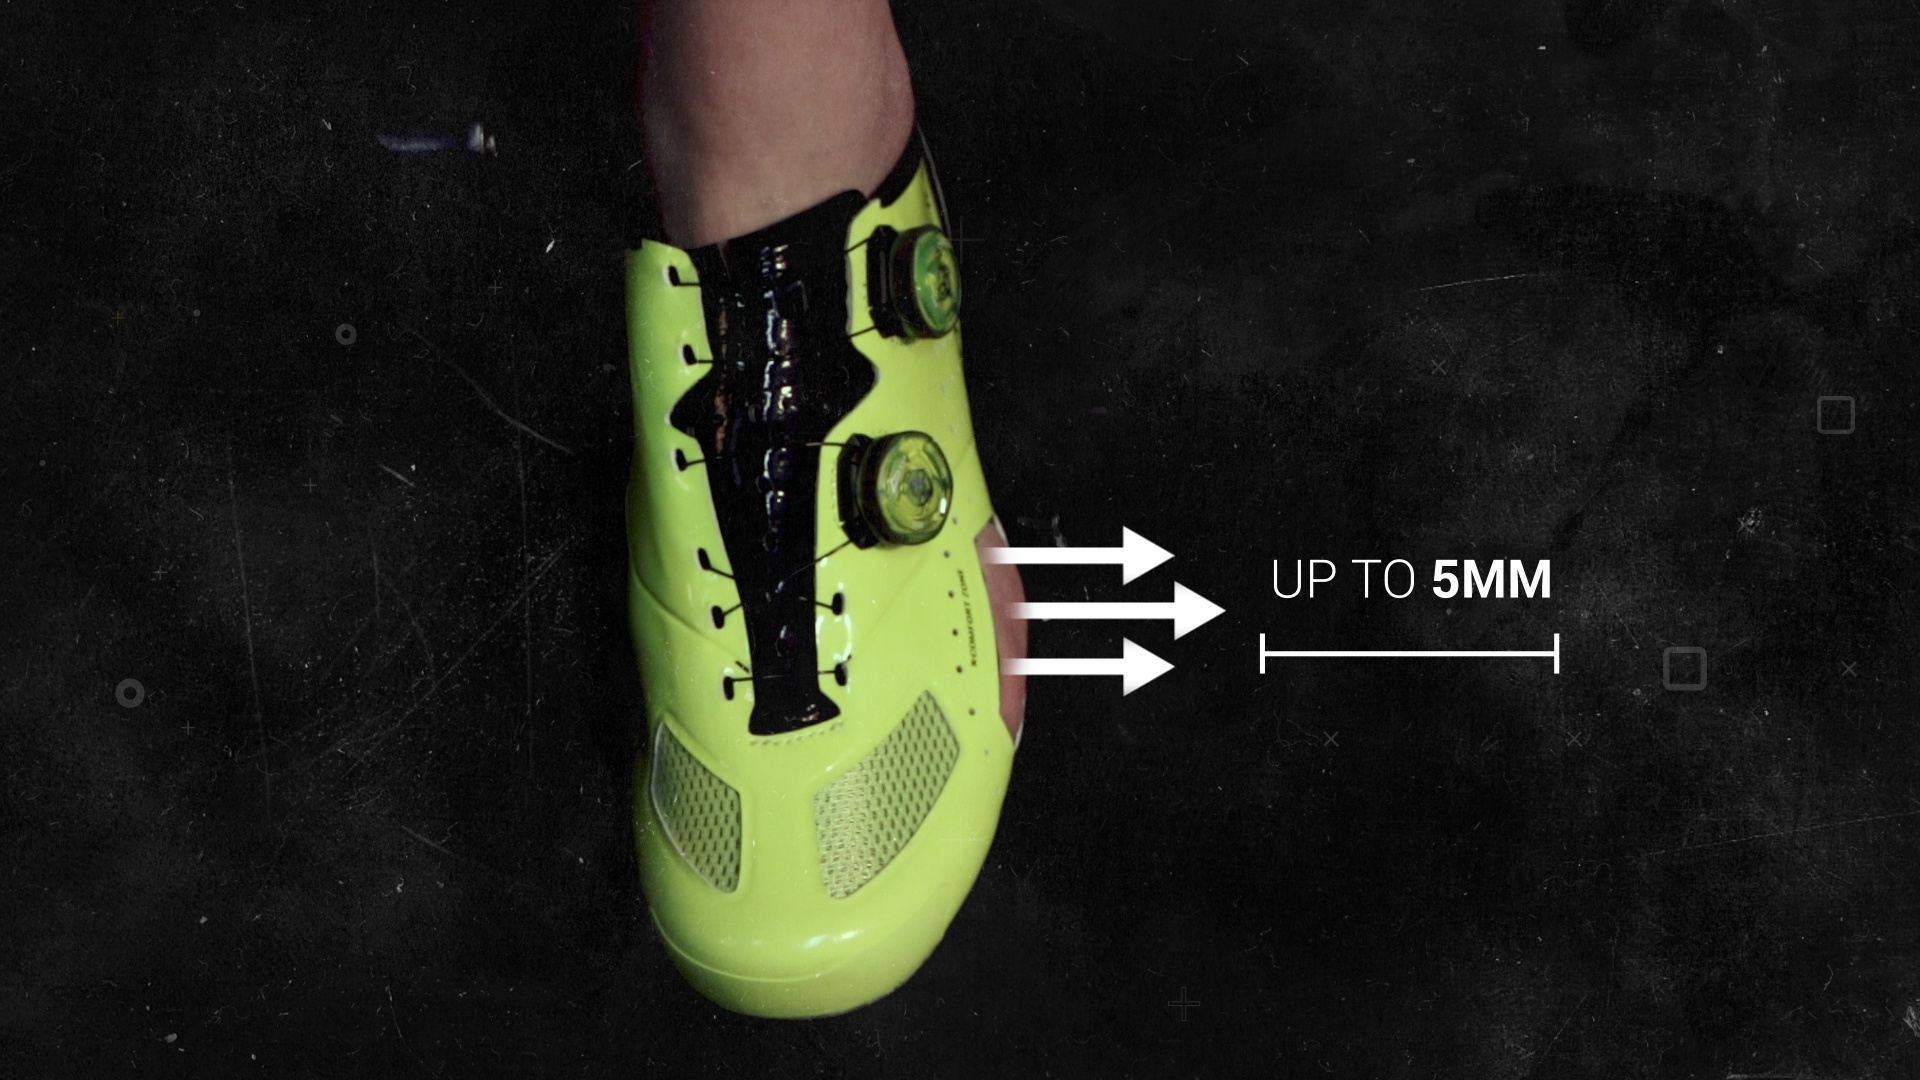 Garneau X-Comfort zone cycling shoes new technology